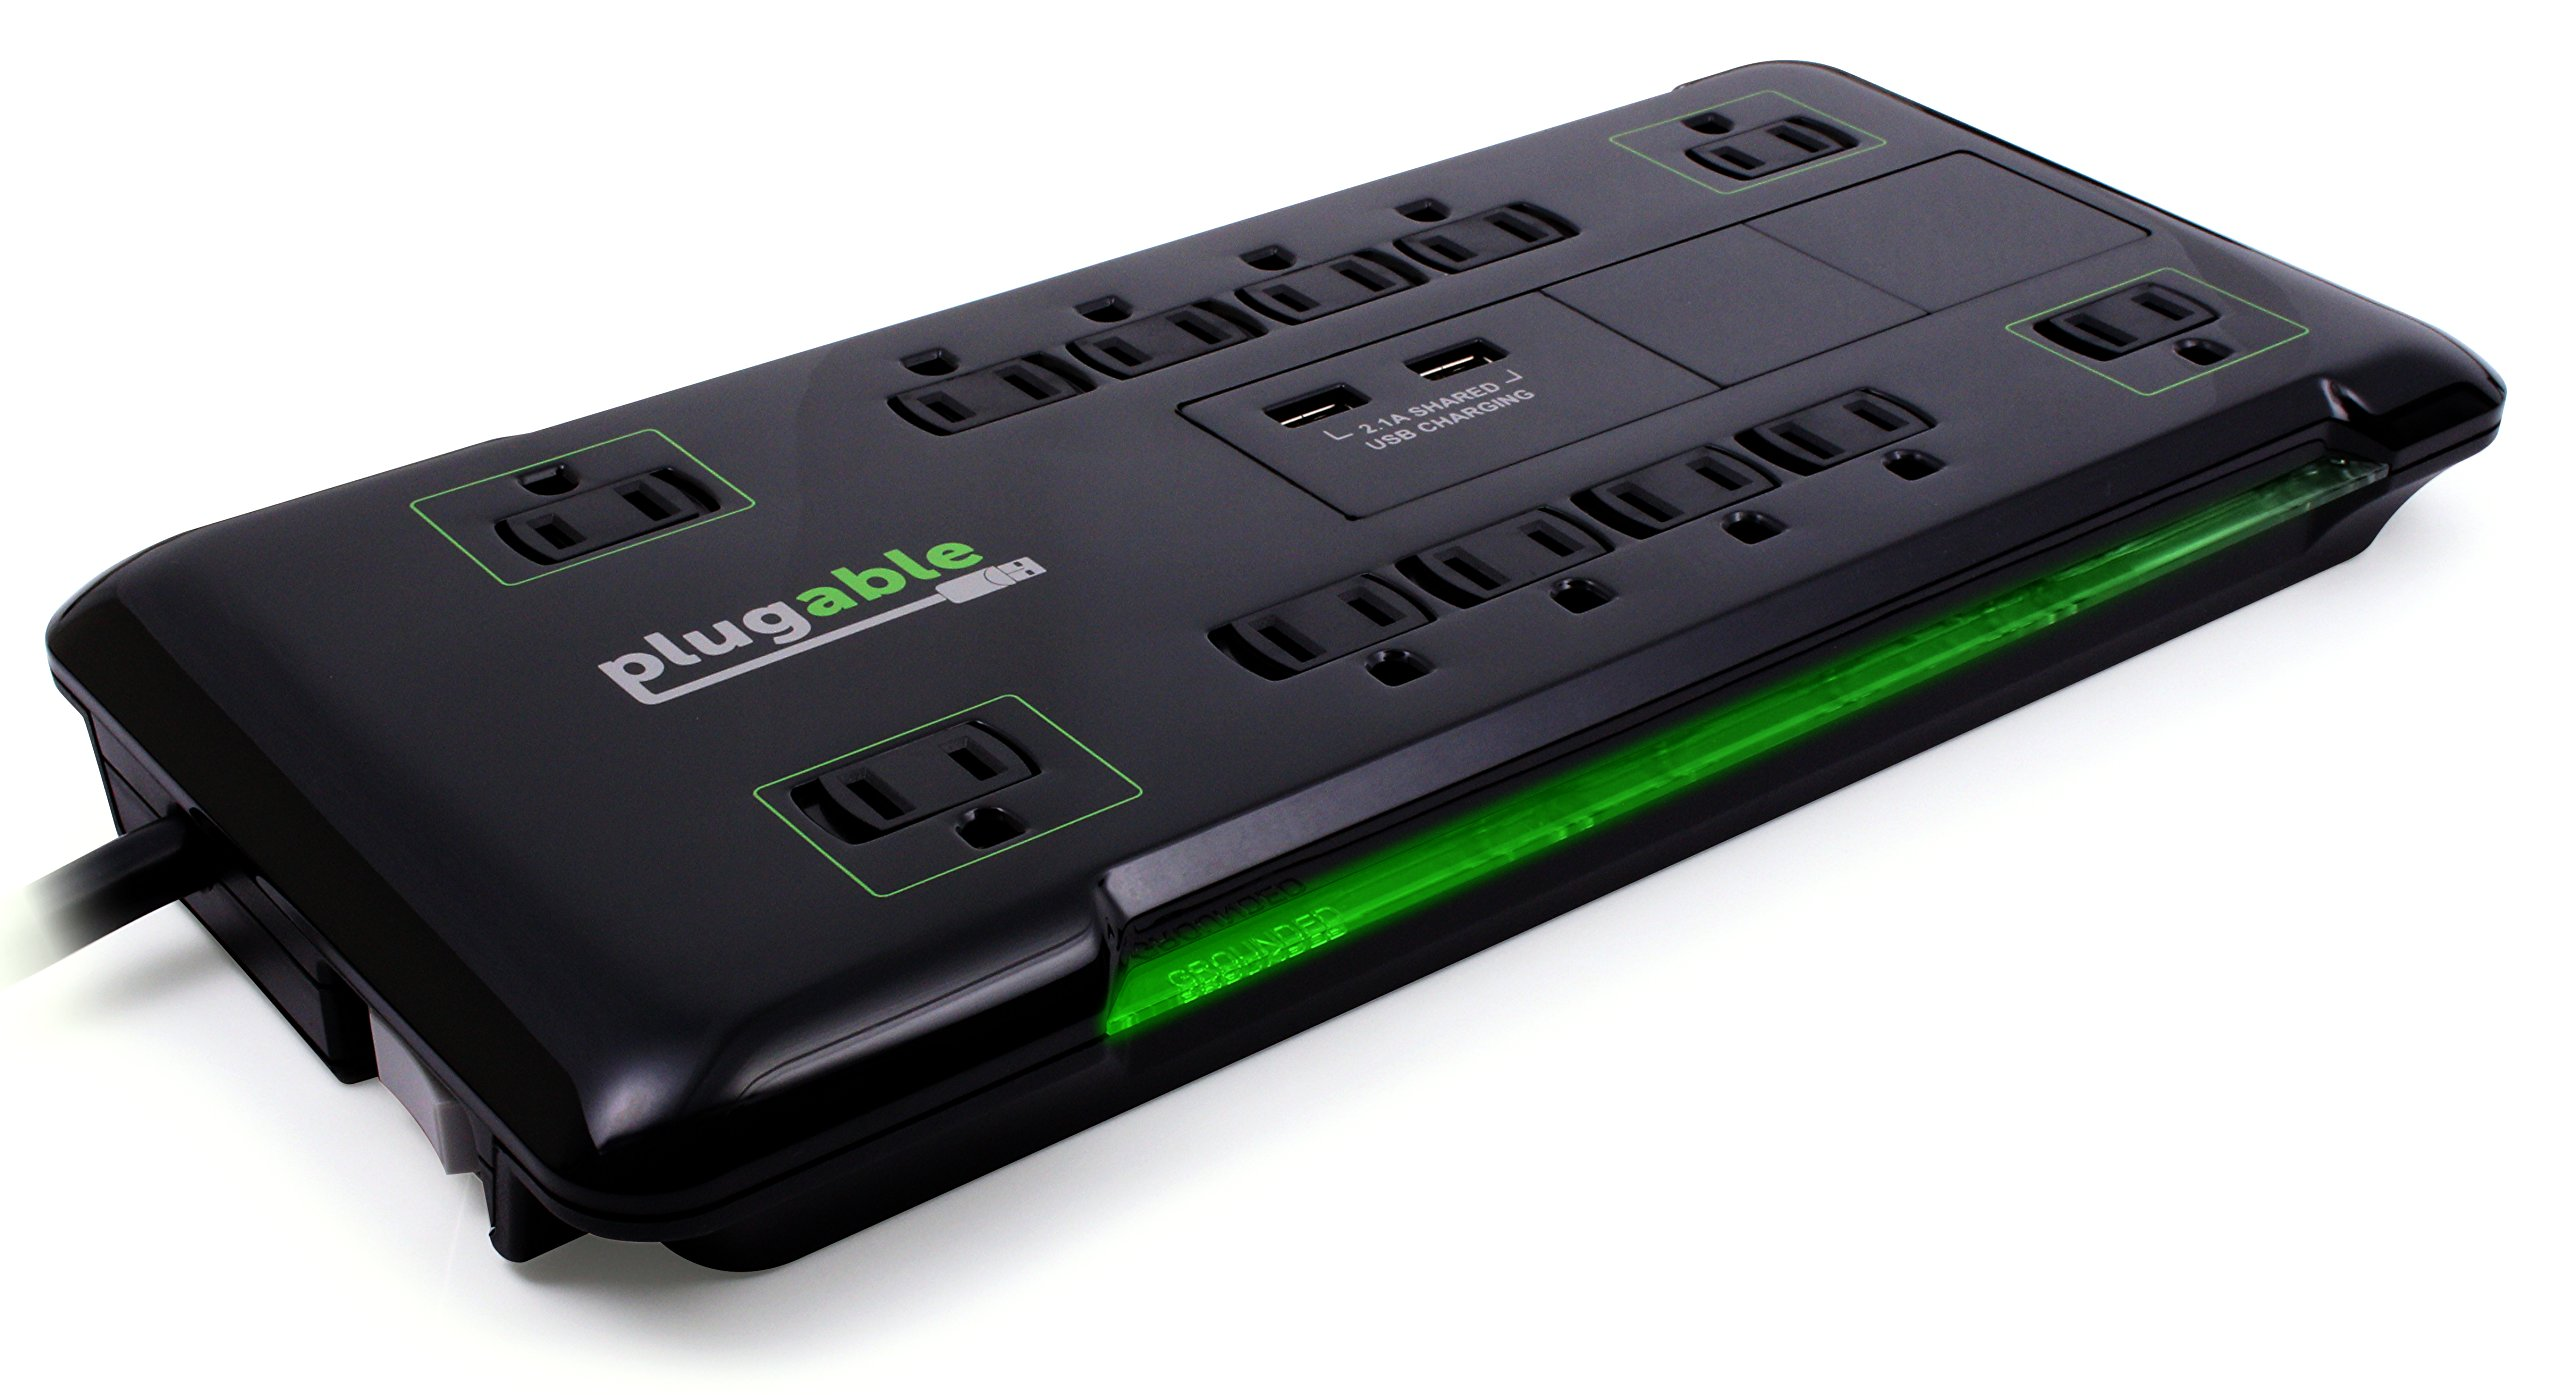 Plugable 12 AC Outlet Surge Protector - 25 foot power cord (Black) by Plugable